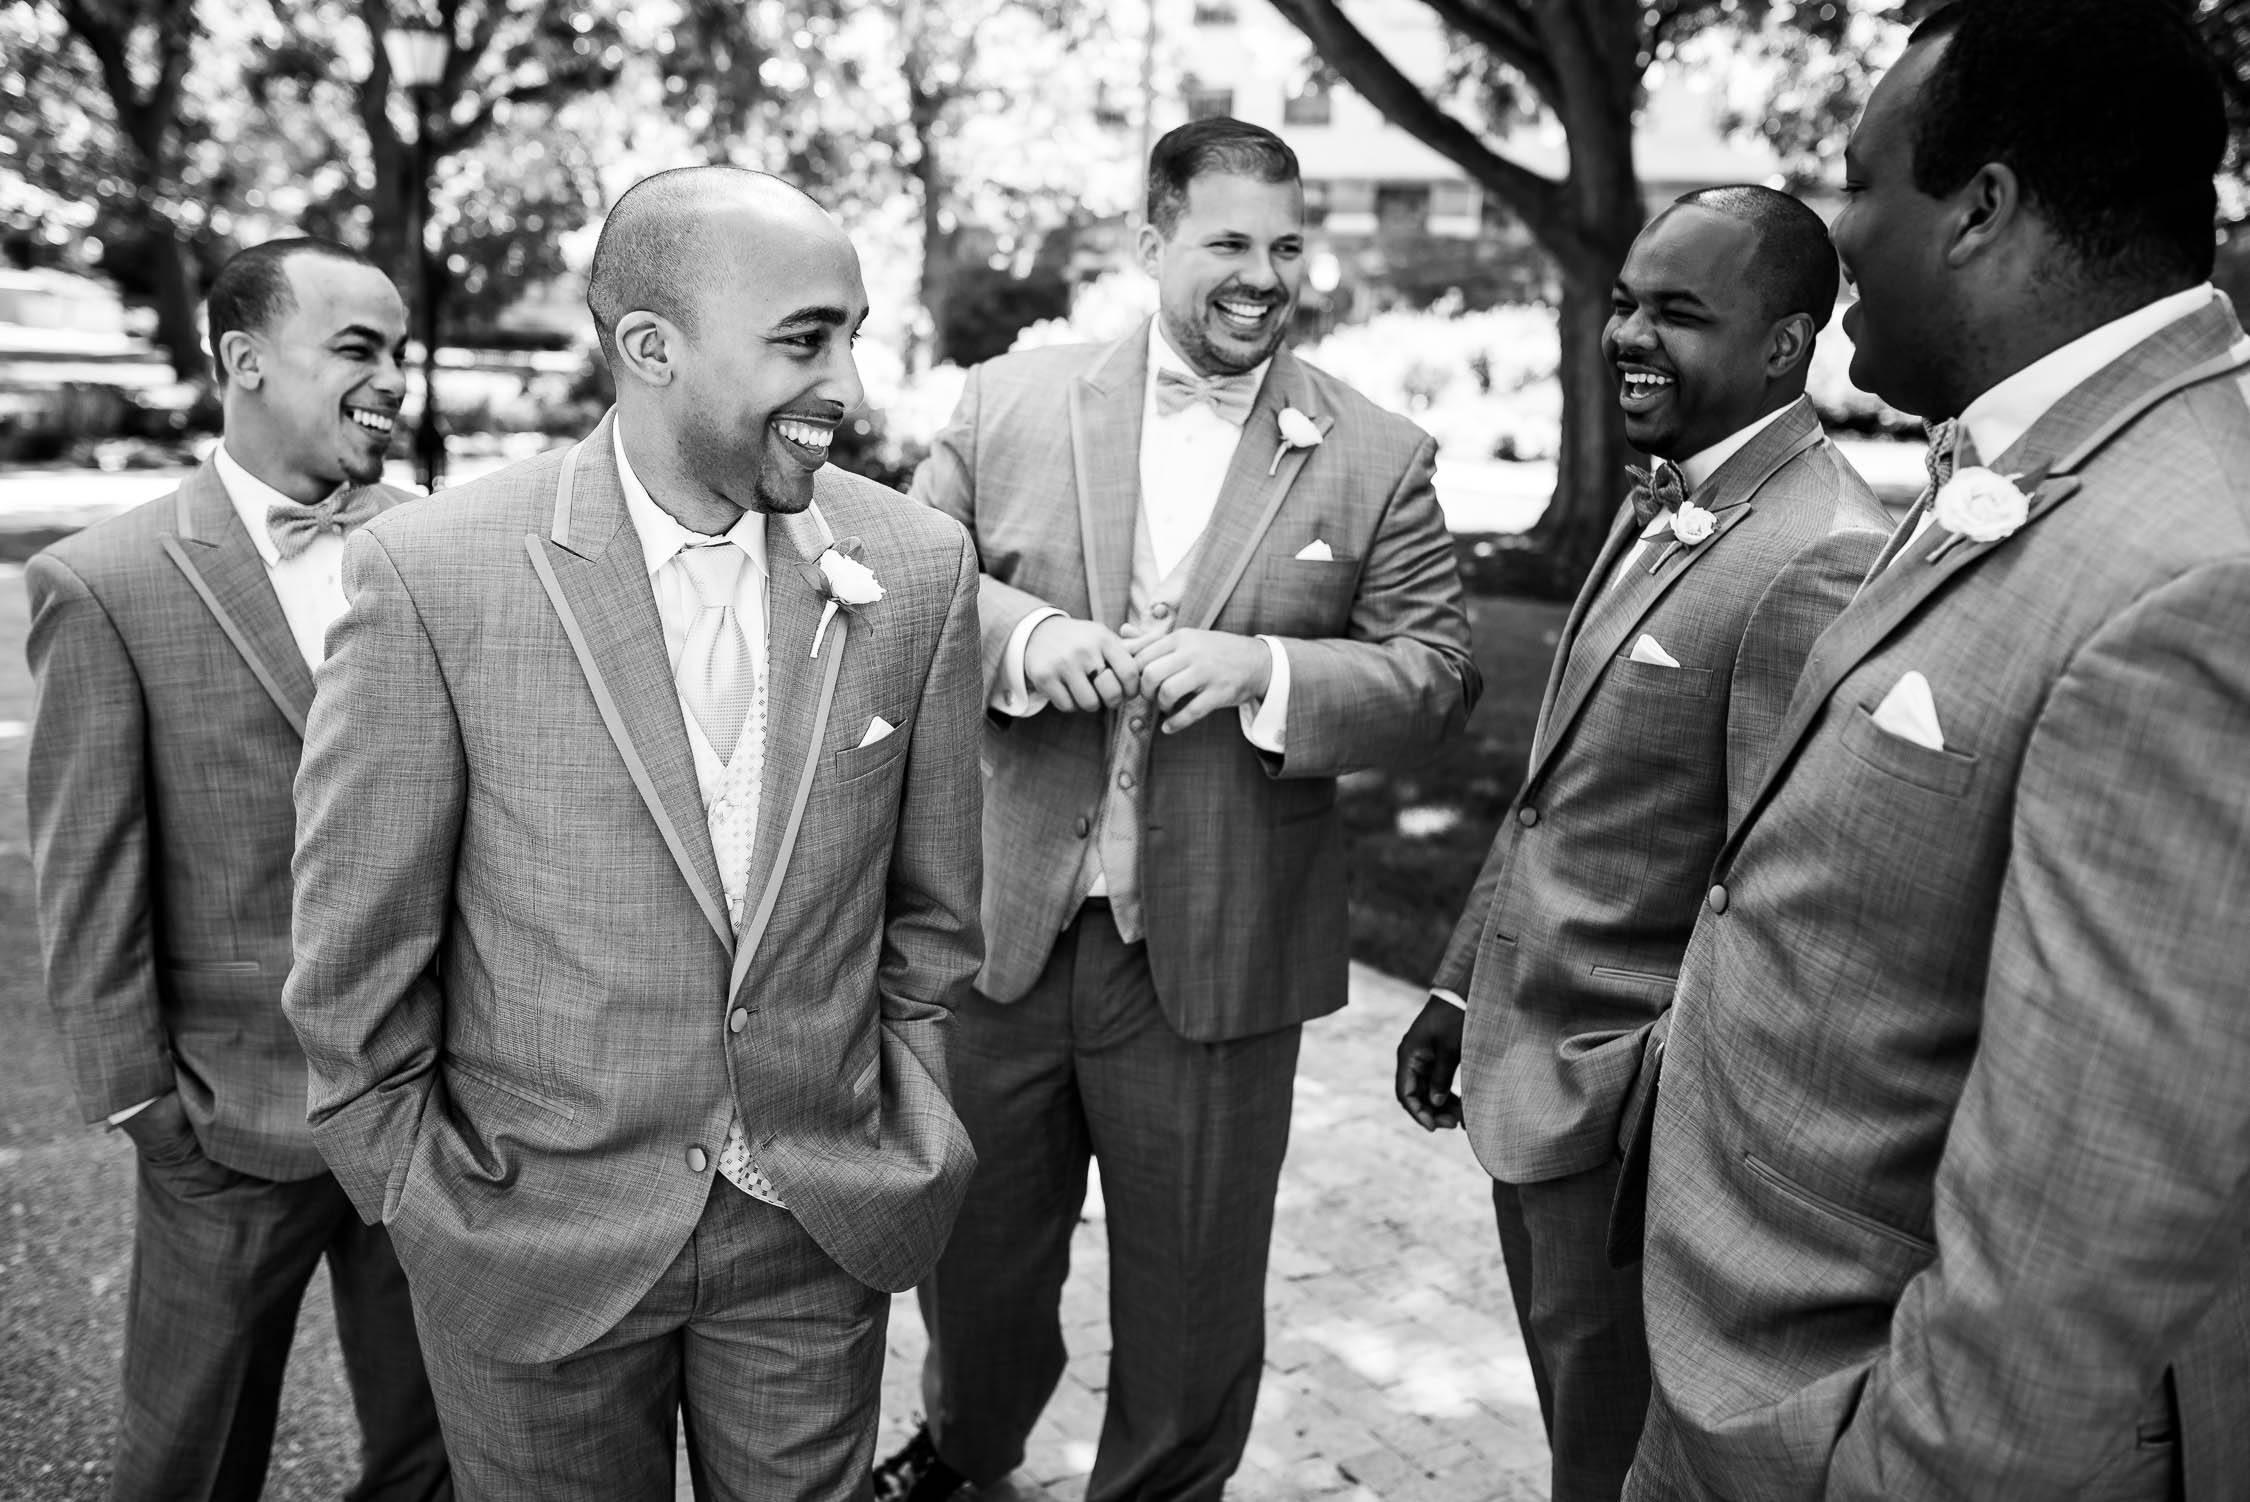 Groomsmen hanging out during a University of Chicago wedding.